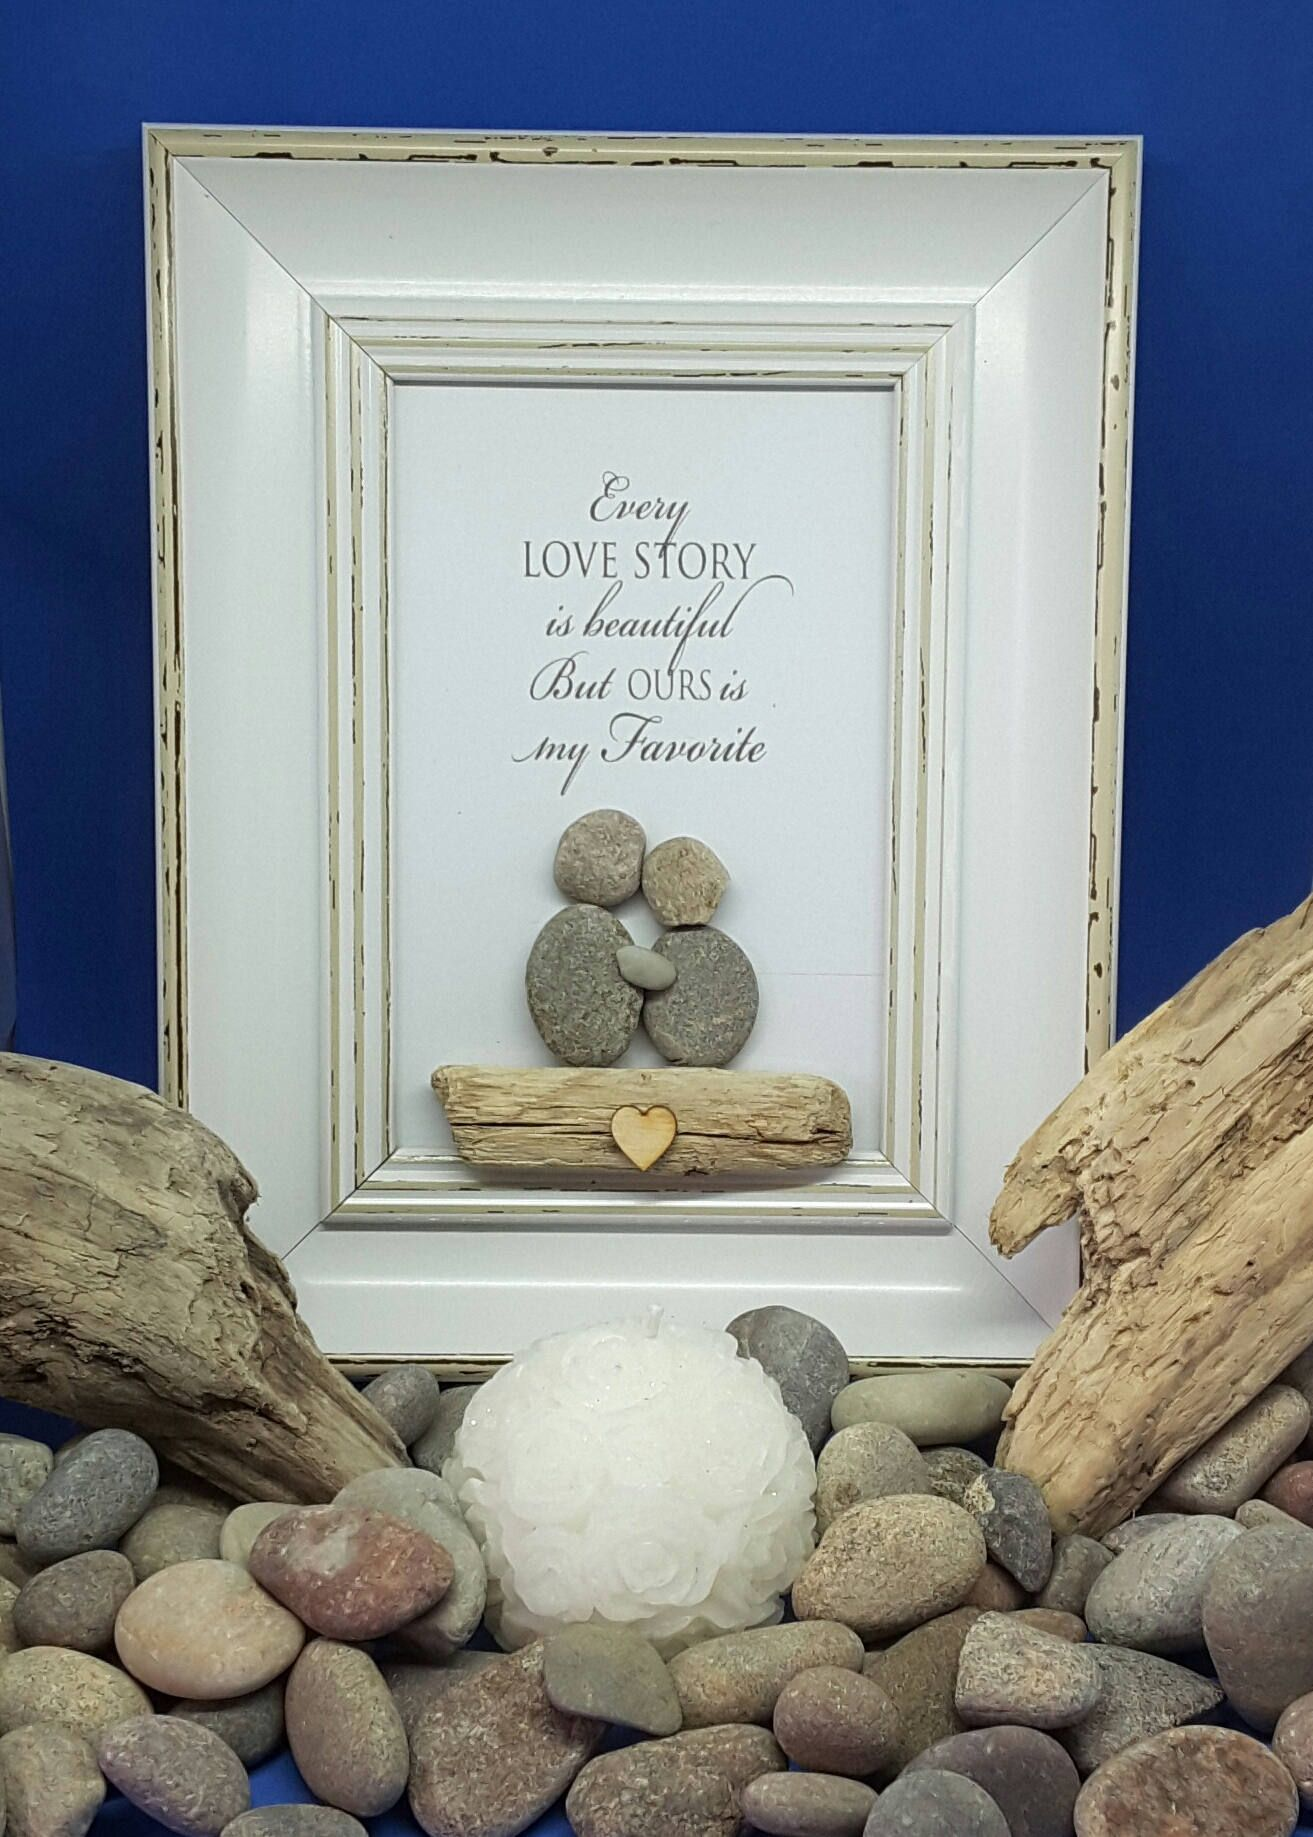 Anniversary Gifts Love Story 5th Wedding S Engagement Pebble Art Picture Frame Handmade Gift For Wife